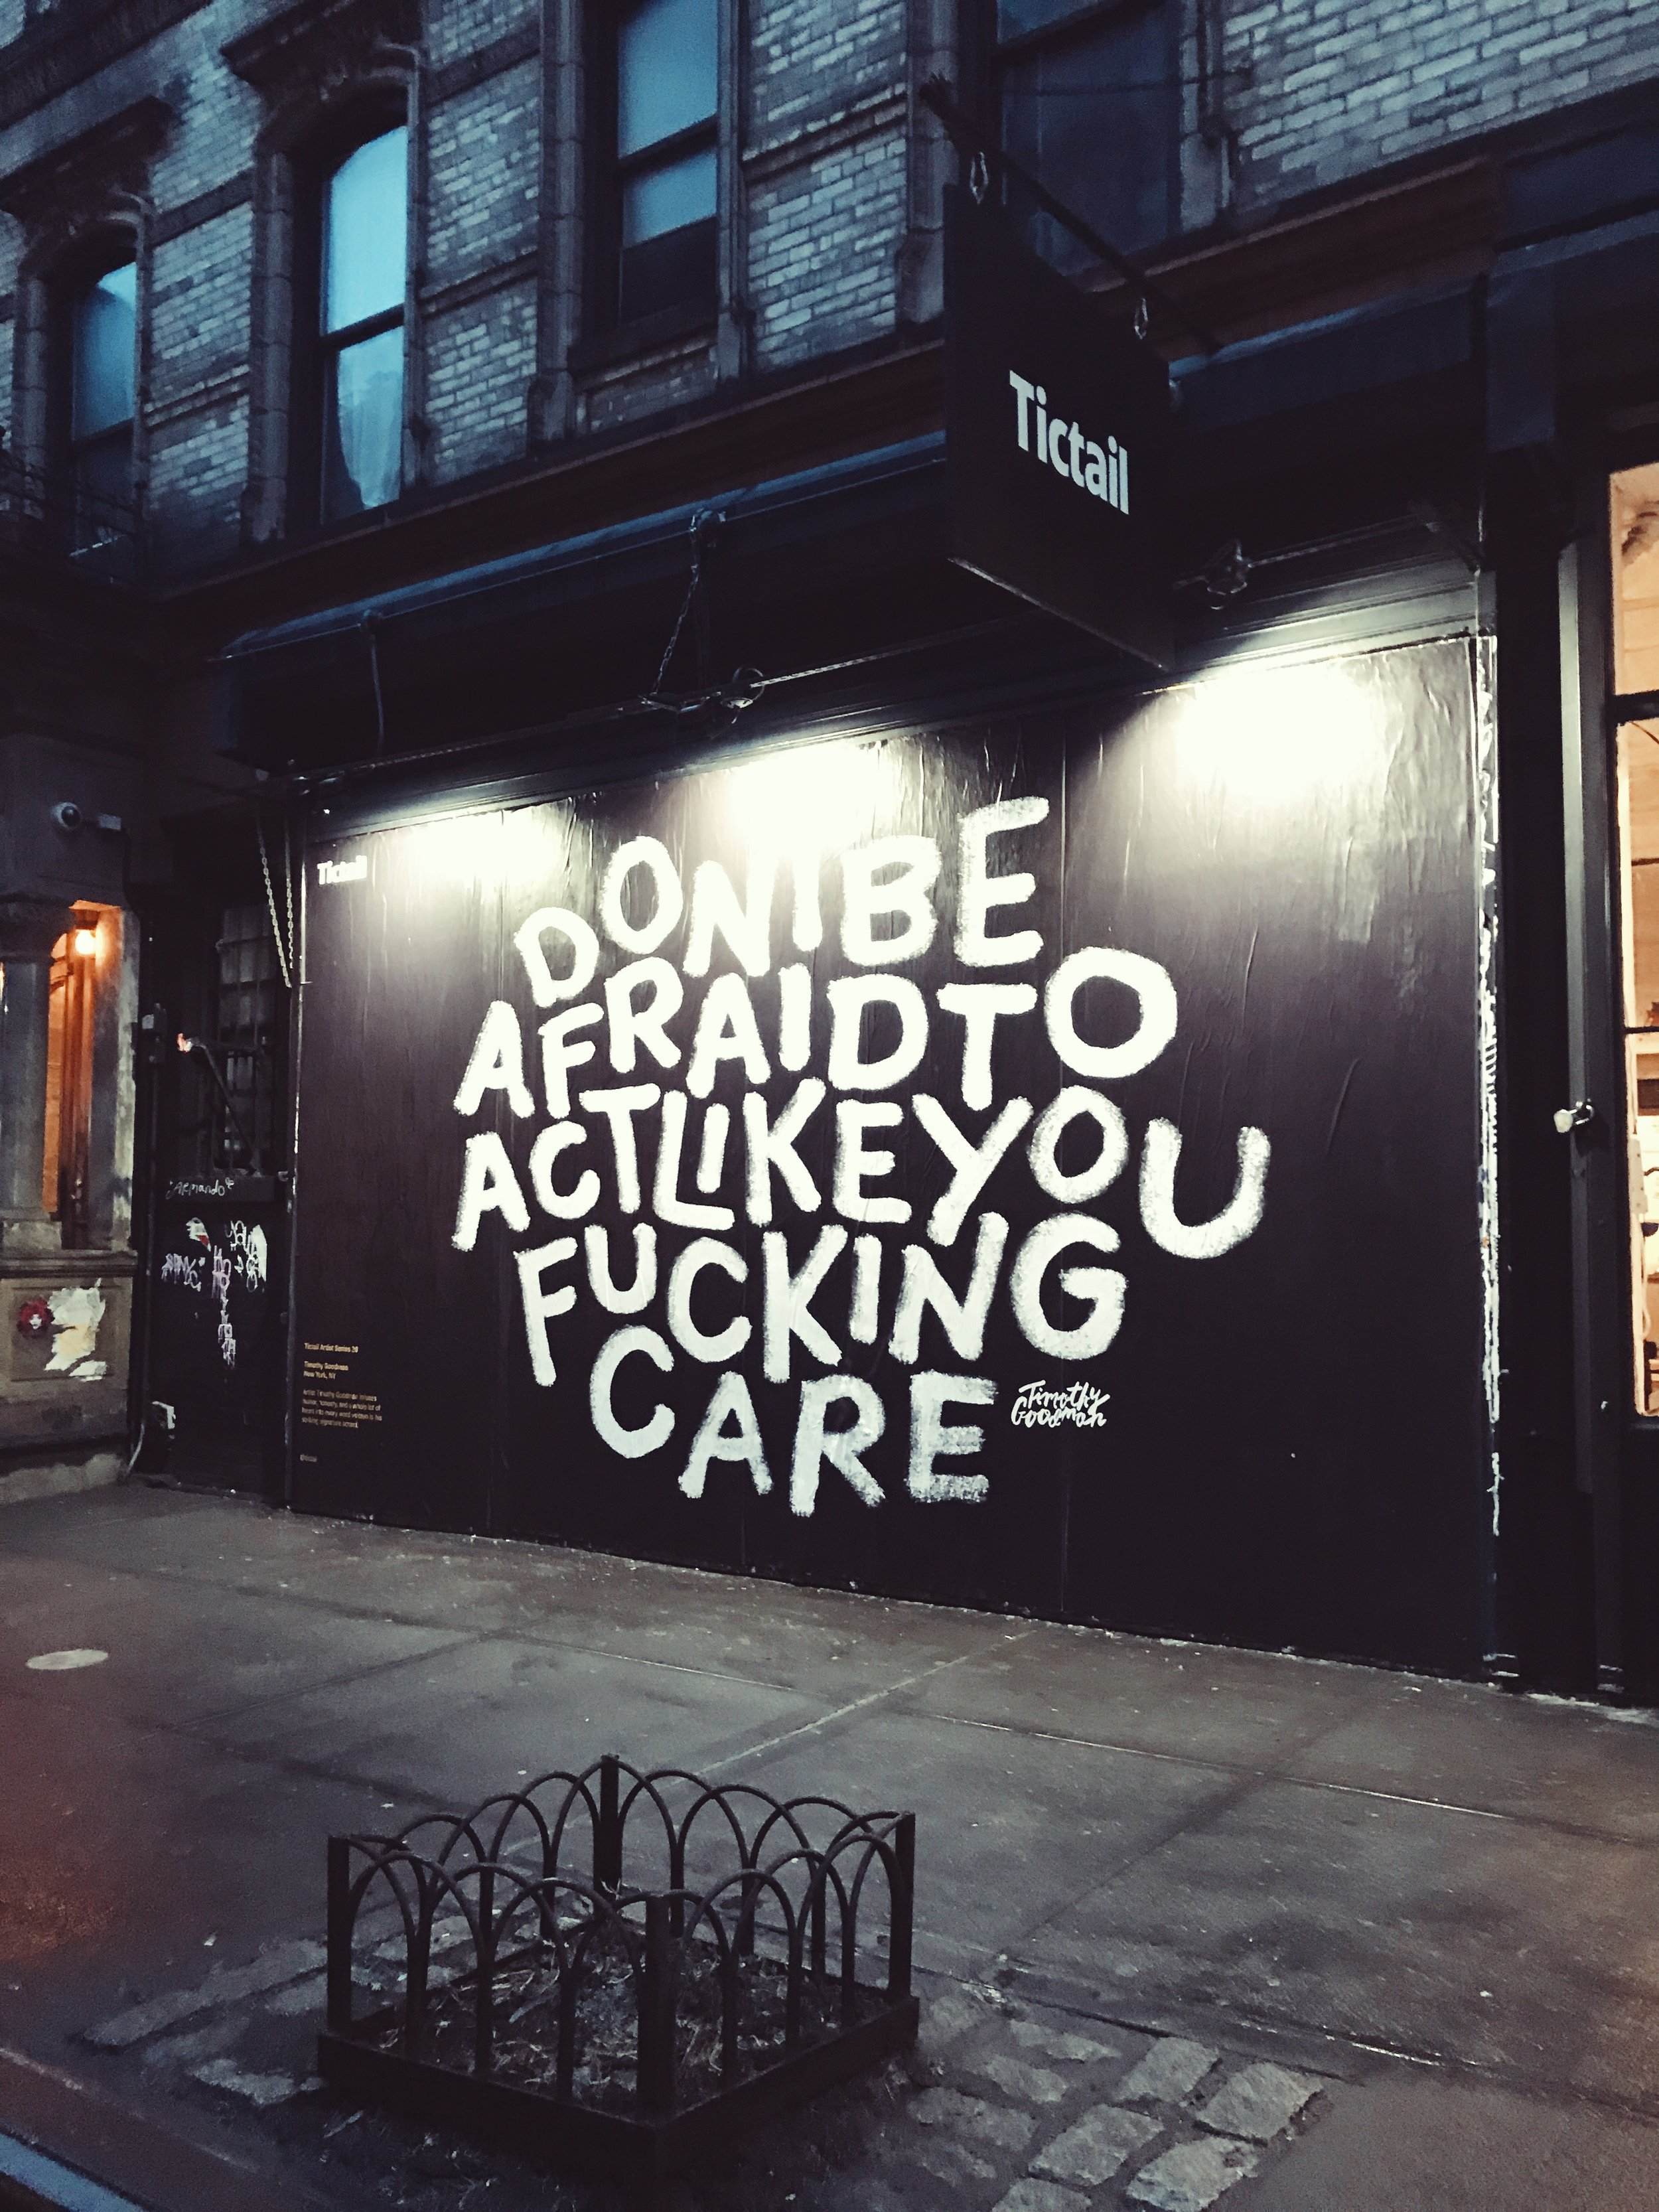 Don't be afraid to act like you fucking care __ living minnaly